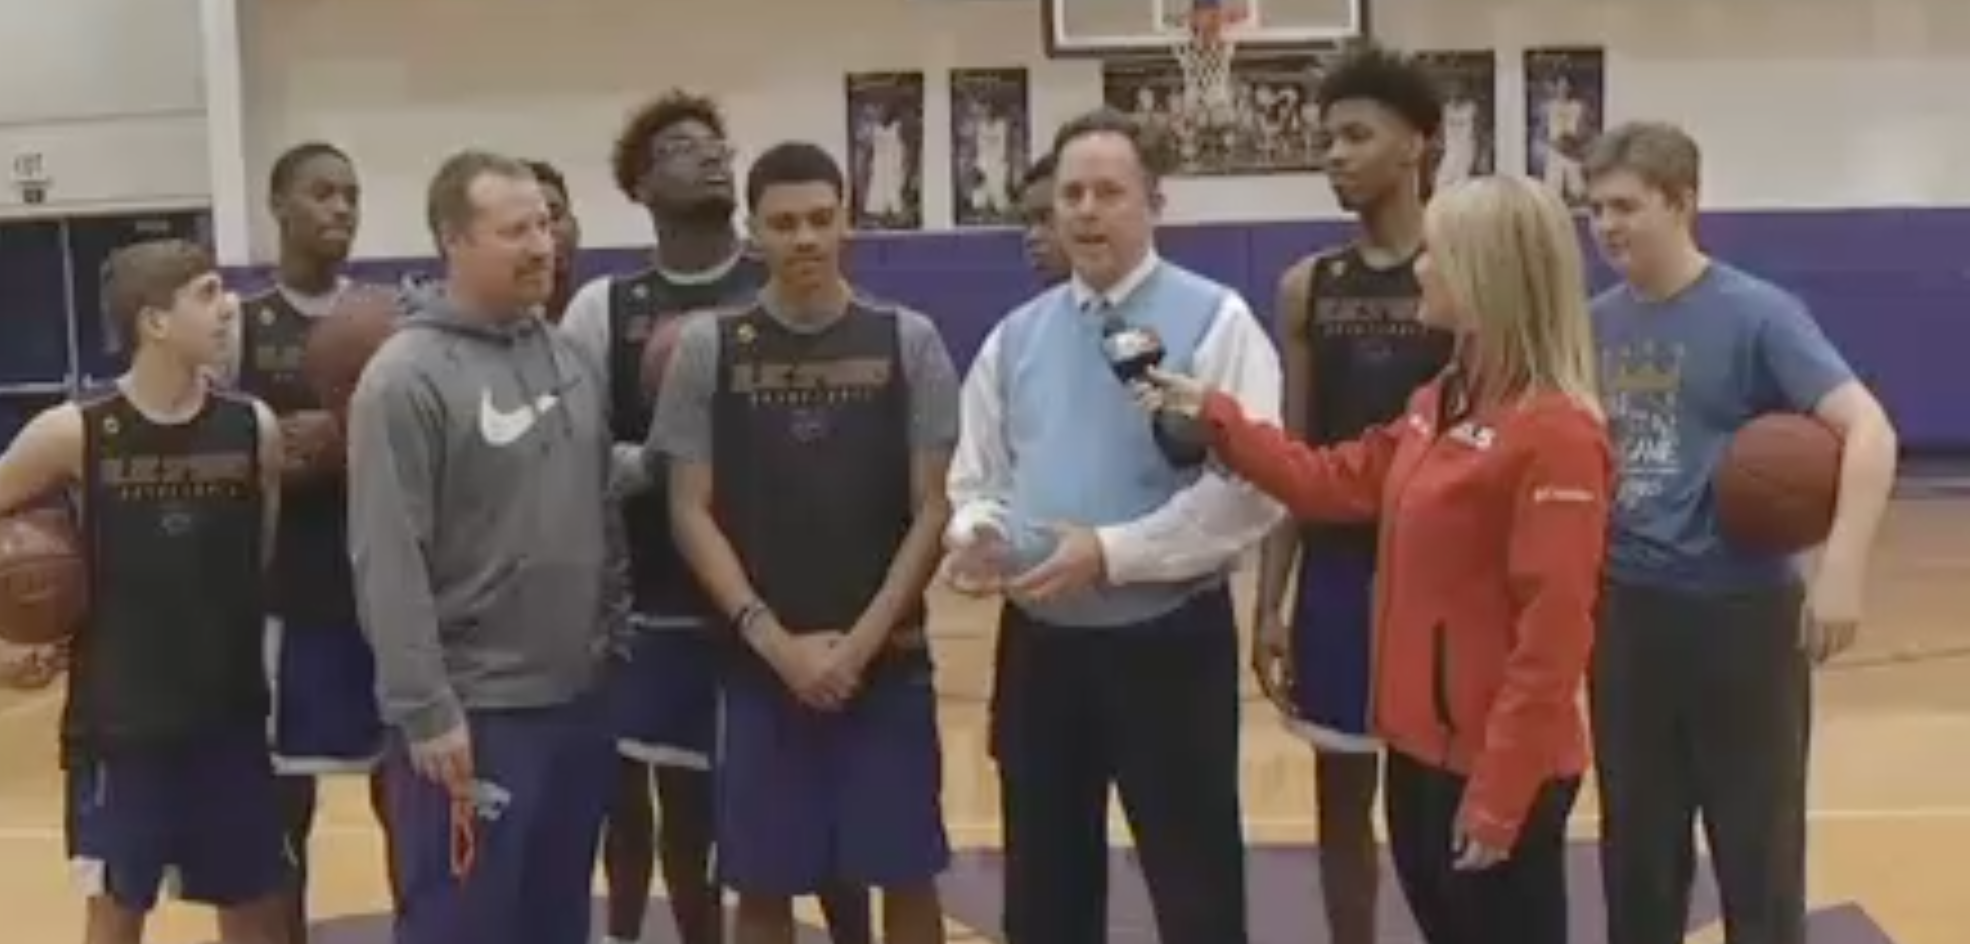 BOYS BASKETBALL WINS KCTV5/HY-VEE TEAM OF THE WEEK